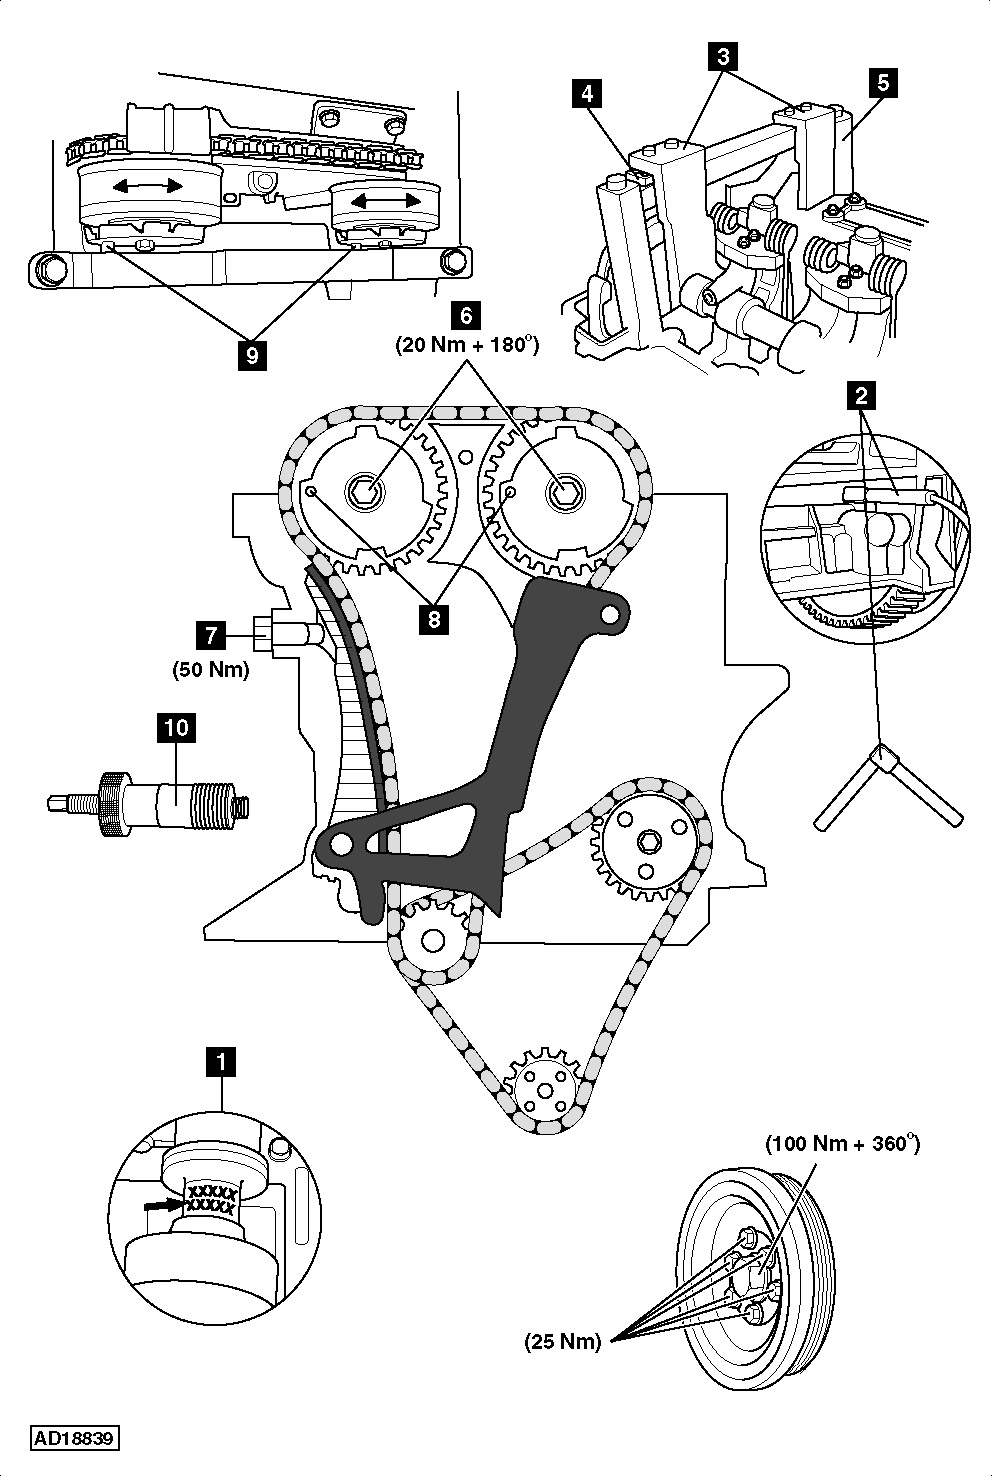 2000 Mitsubishi Montero Sport Problems on 2001 Mitsubishi Montero Sport Parts Diagram